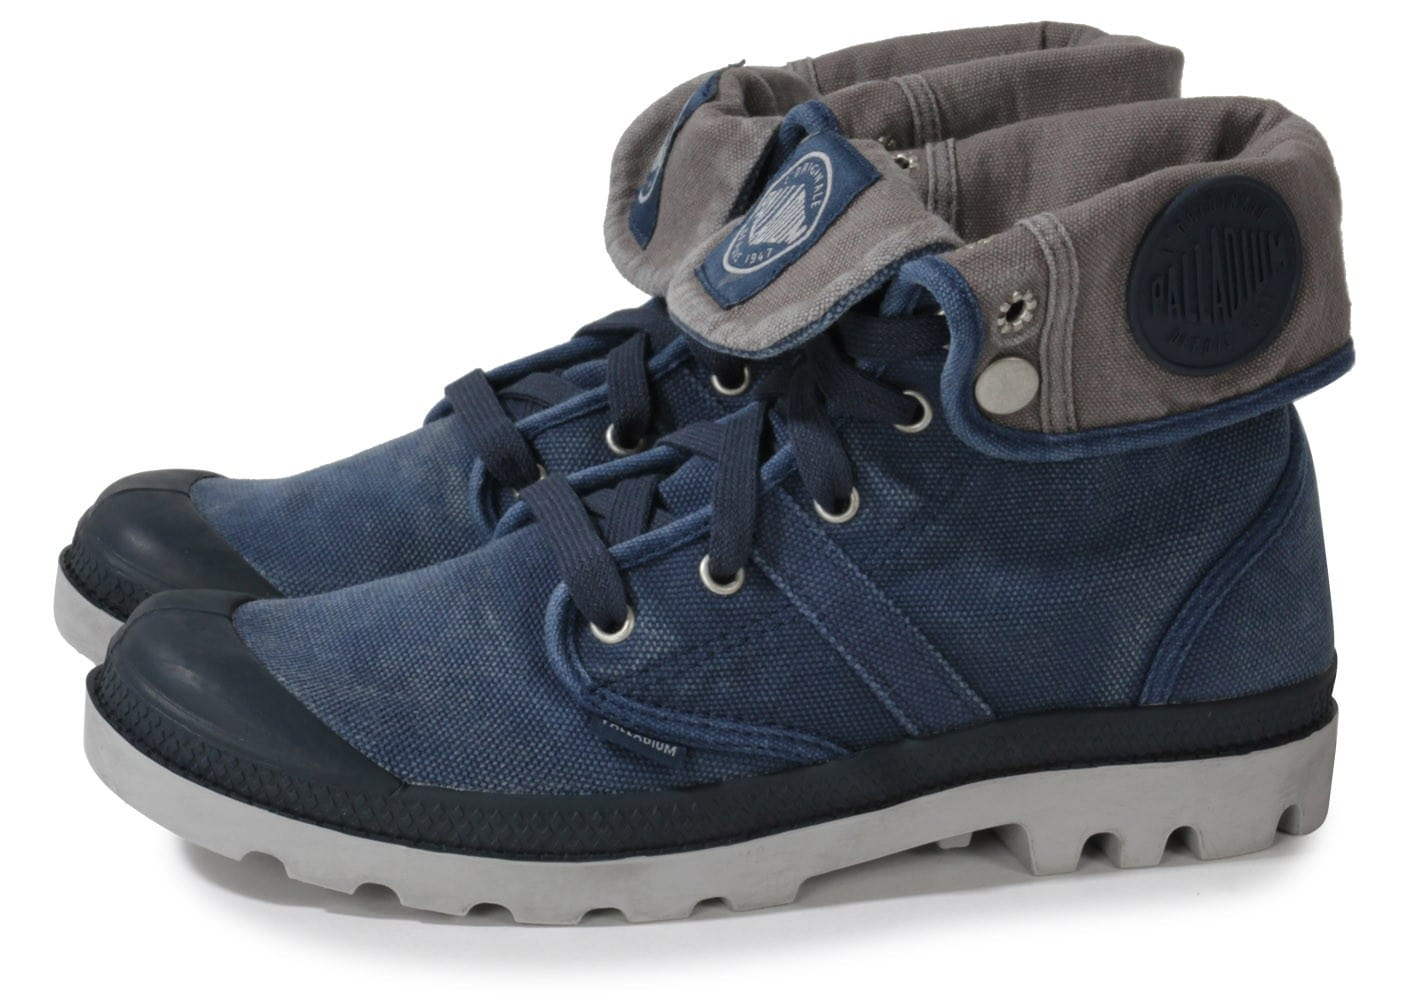 Us Homme Chaussures Baskets Palladium Navy Metal Baggy MpSUVz